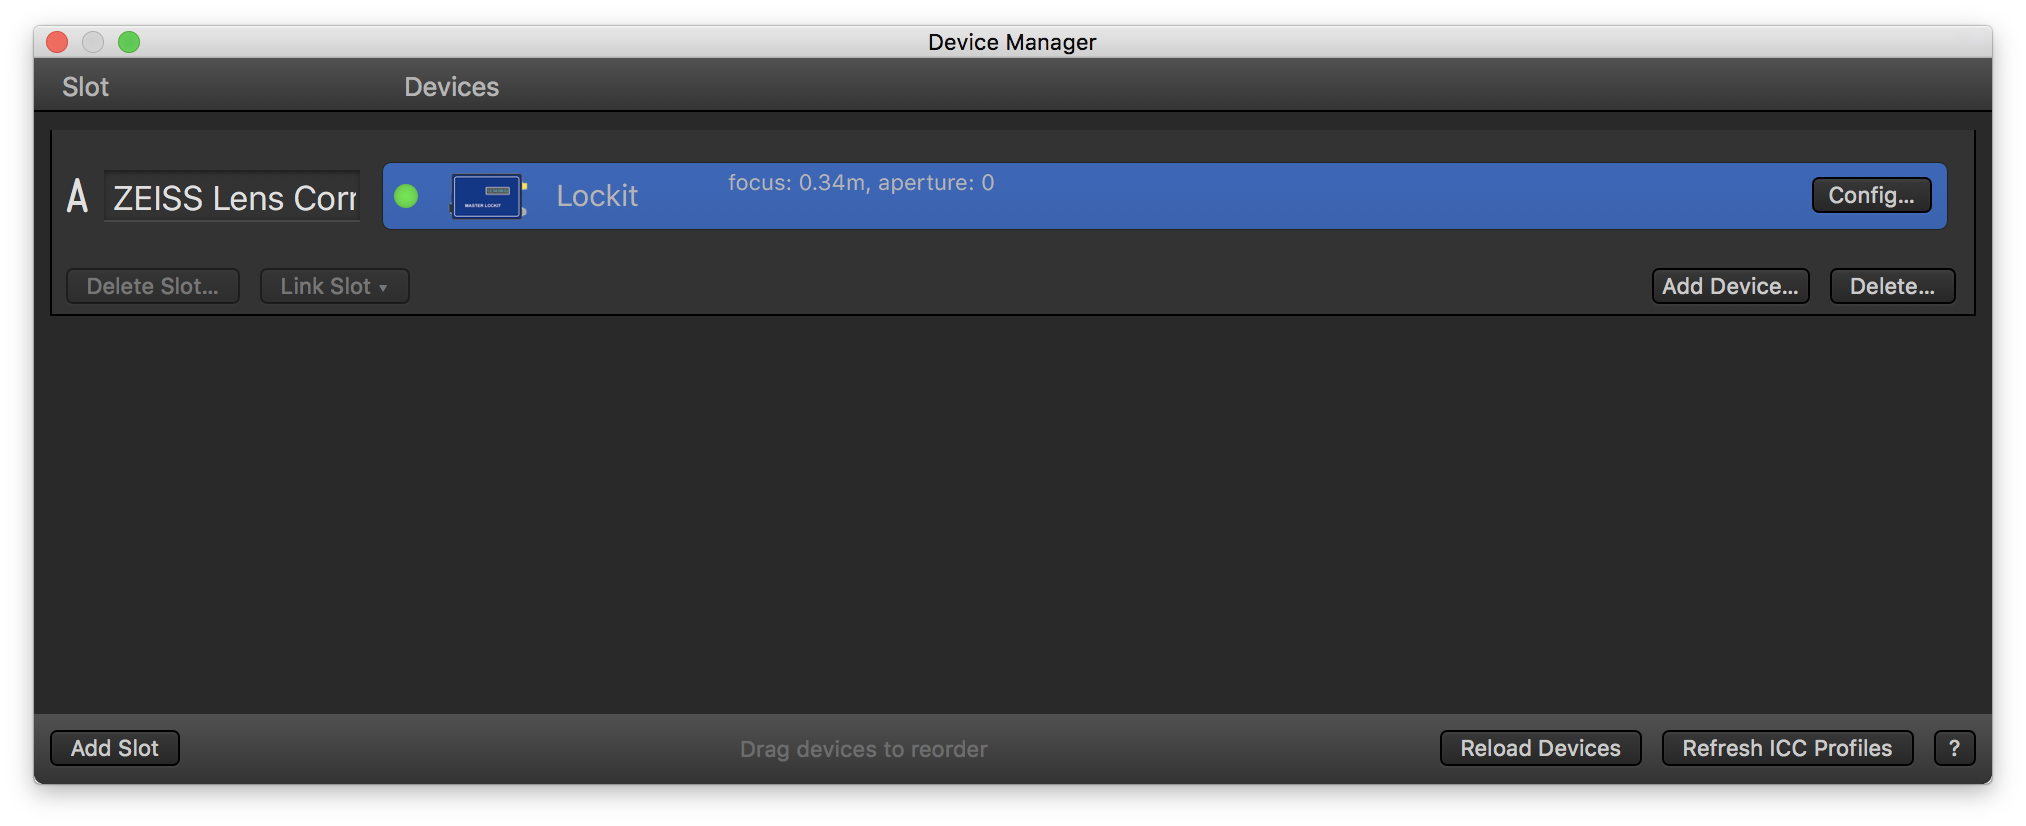 Fig. 2: The device manager with the added MasterLockit Plus